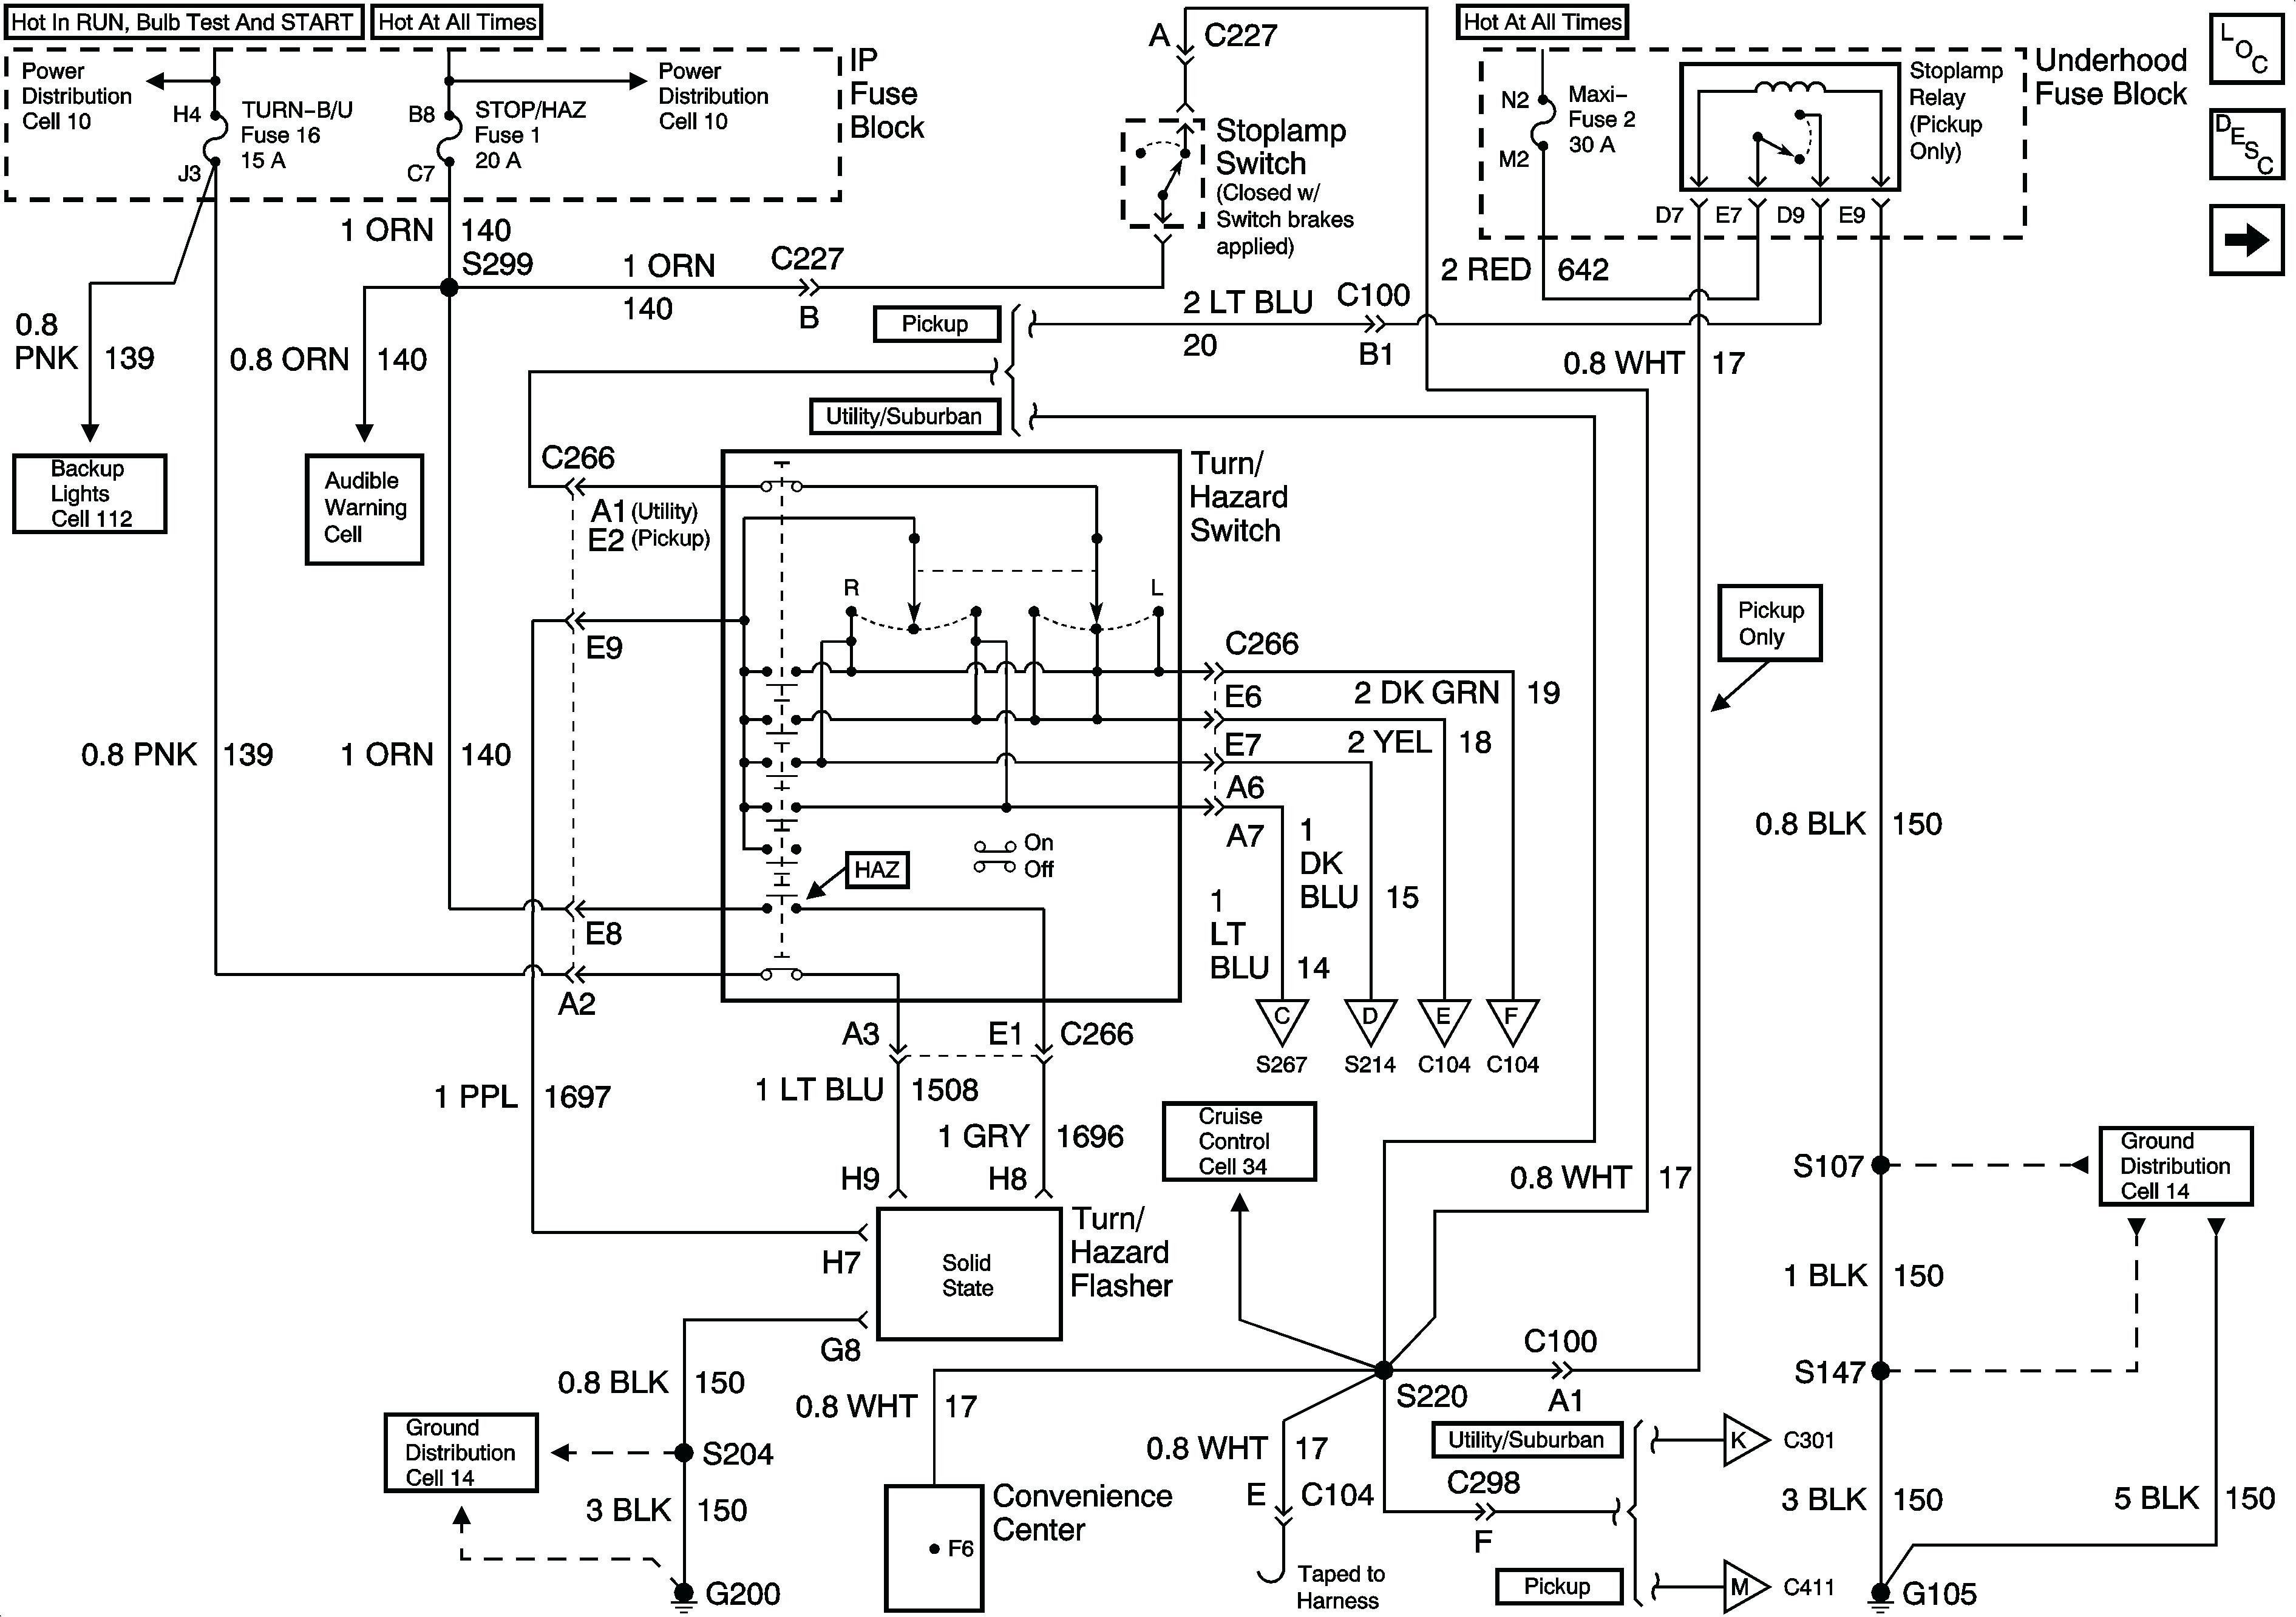 14 Best Sample Of Autodata Wiring Diagrams Technique ,  https://bacamajalah.com/14-best-sample-of-autodata-wiring-diag… | Diagram,  Chrysler town and country, Audi a4Pinterest